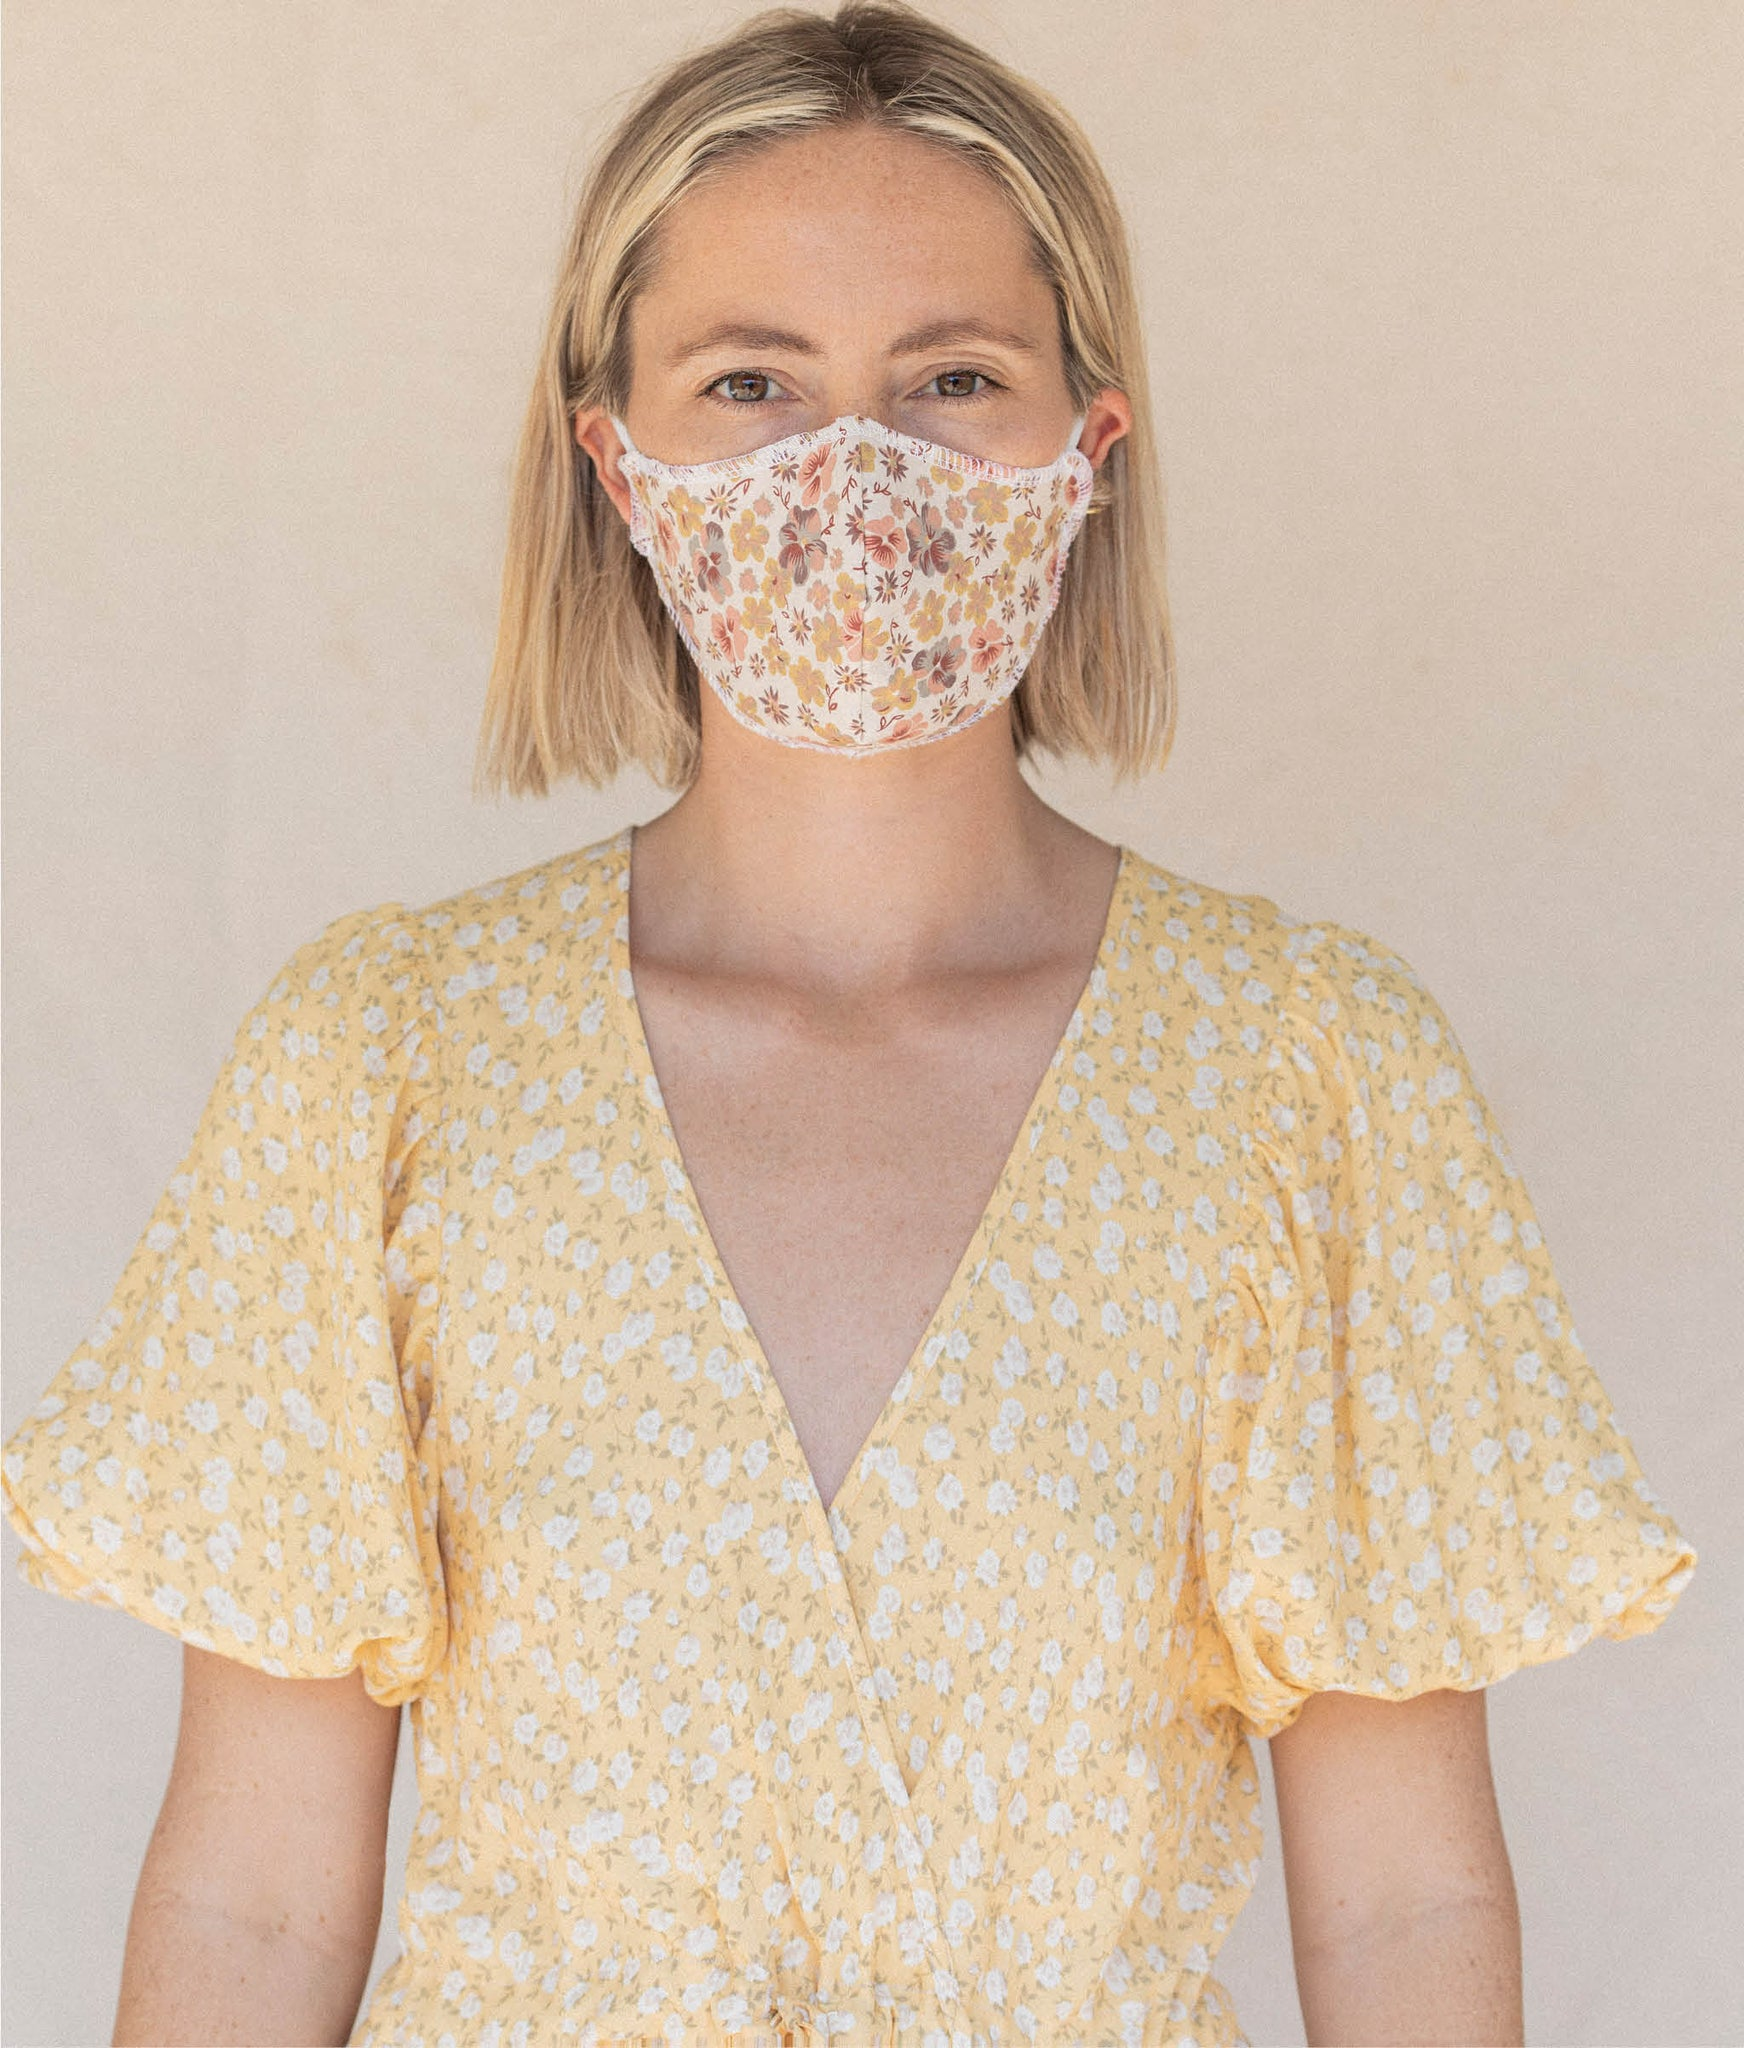 The Sustainable Mask | Florals 5-Pack